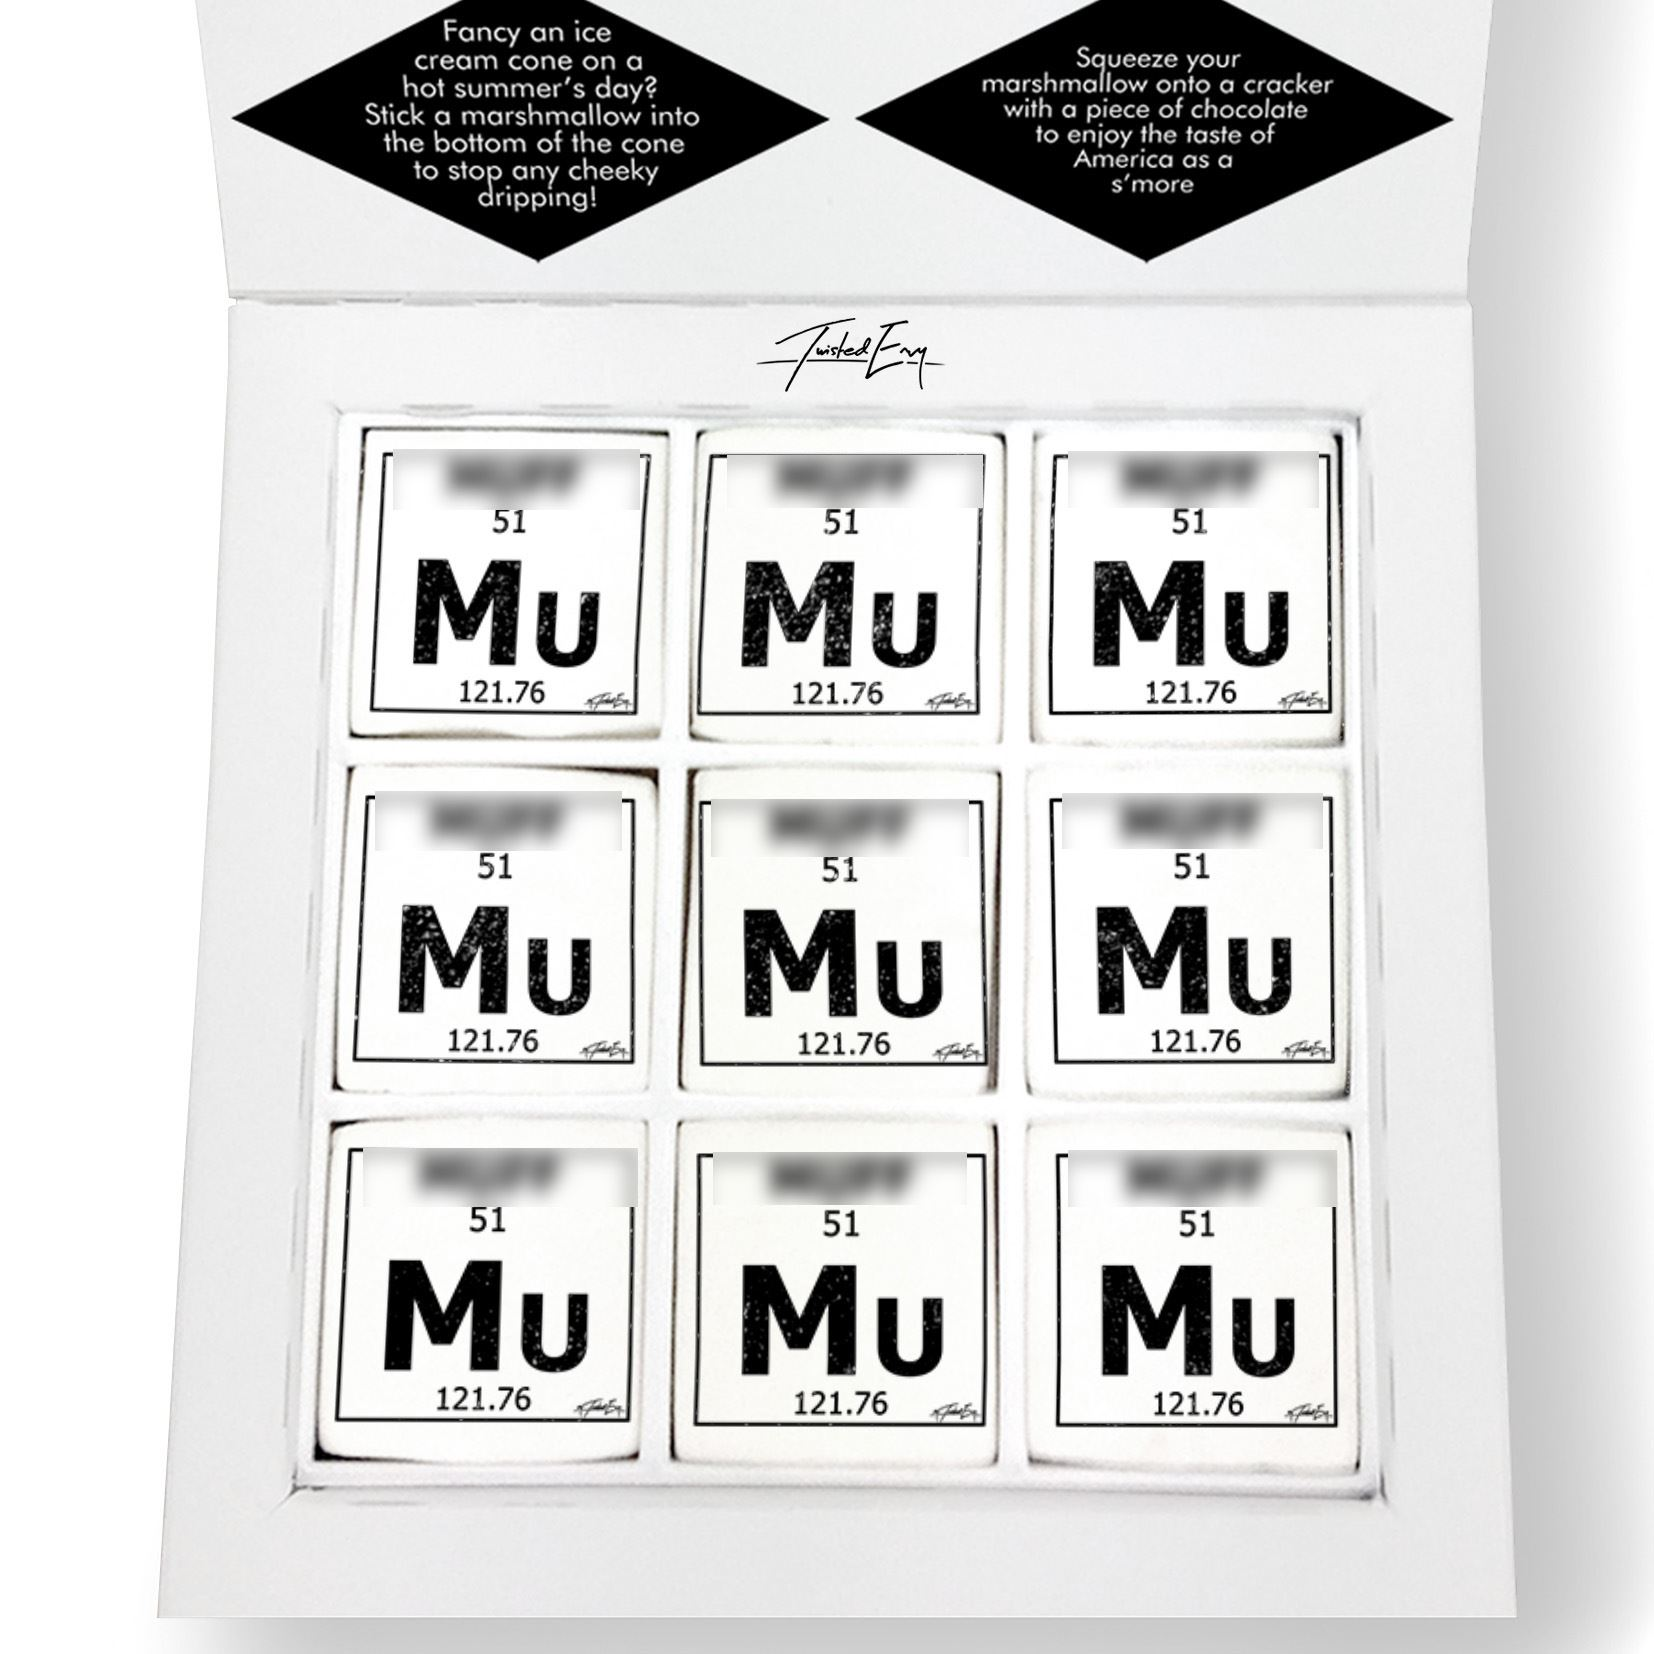 Twisted envy periodic table of swearing mu printed magical periodic table of swearing mu printed marshmallows unique designs make a great gift for everyone say it with shnapz marshmallows designed by humans urtaz Choice Image